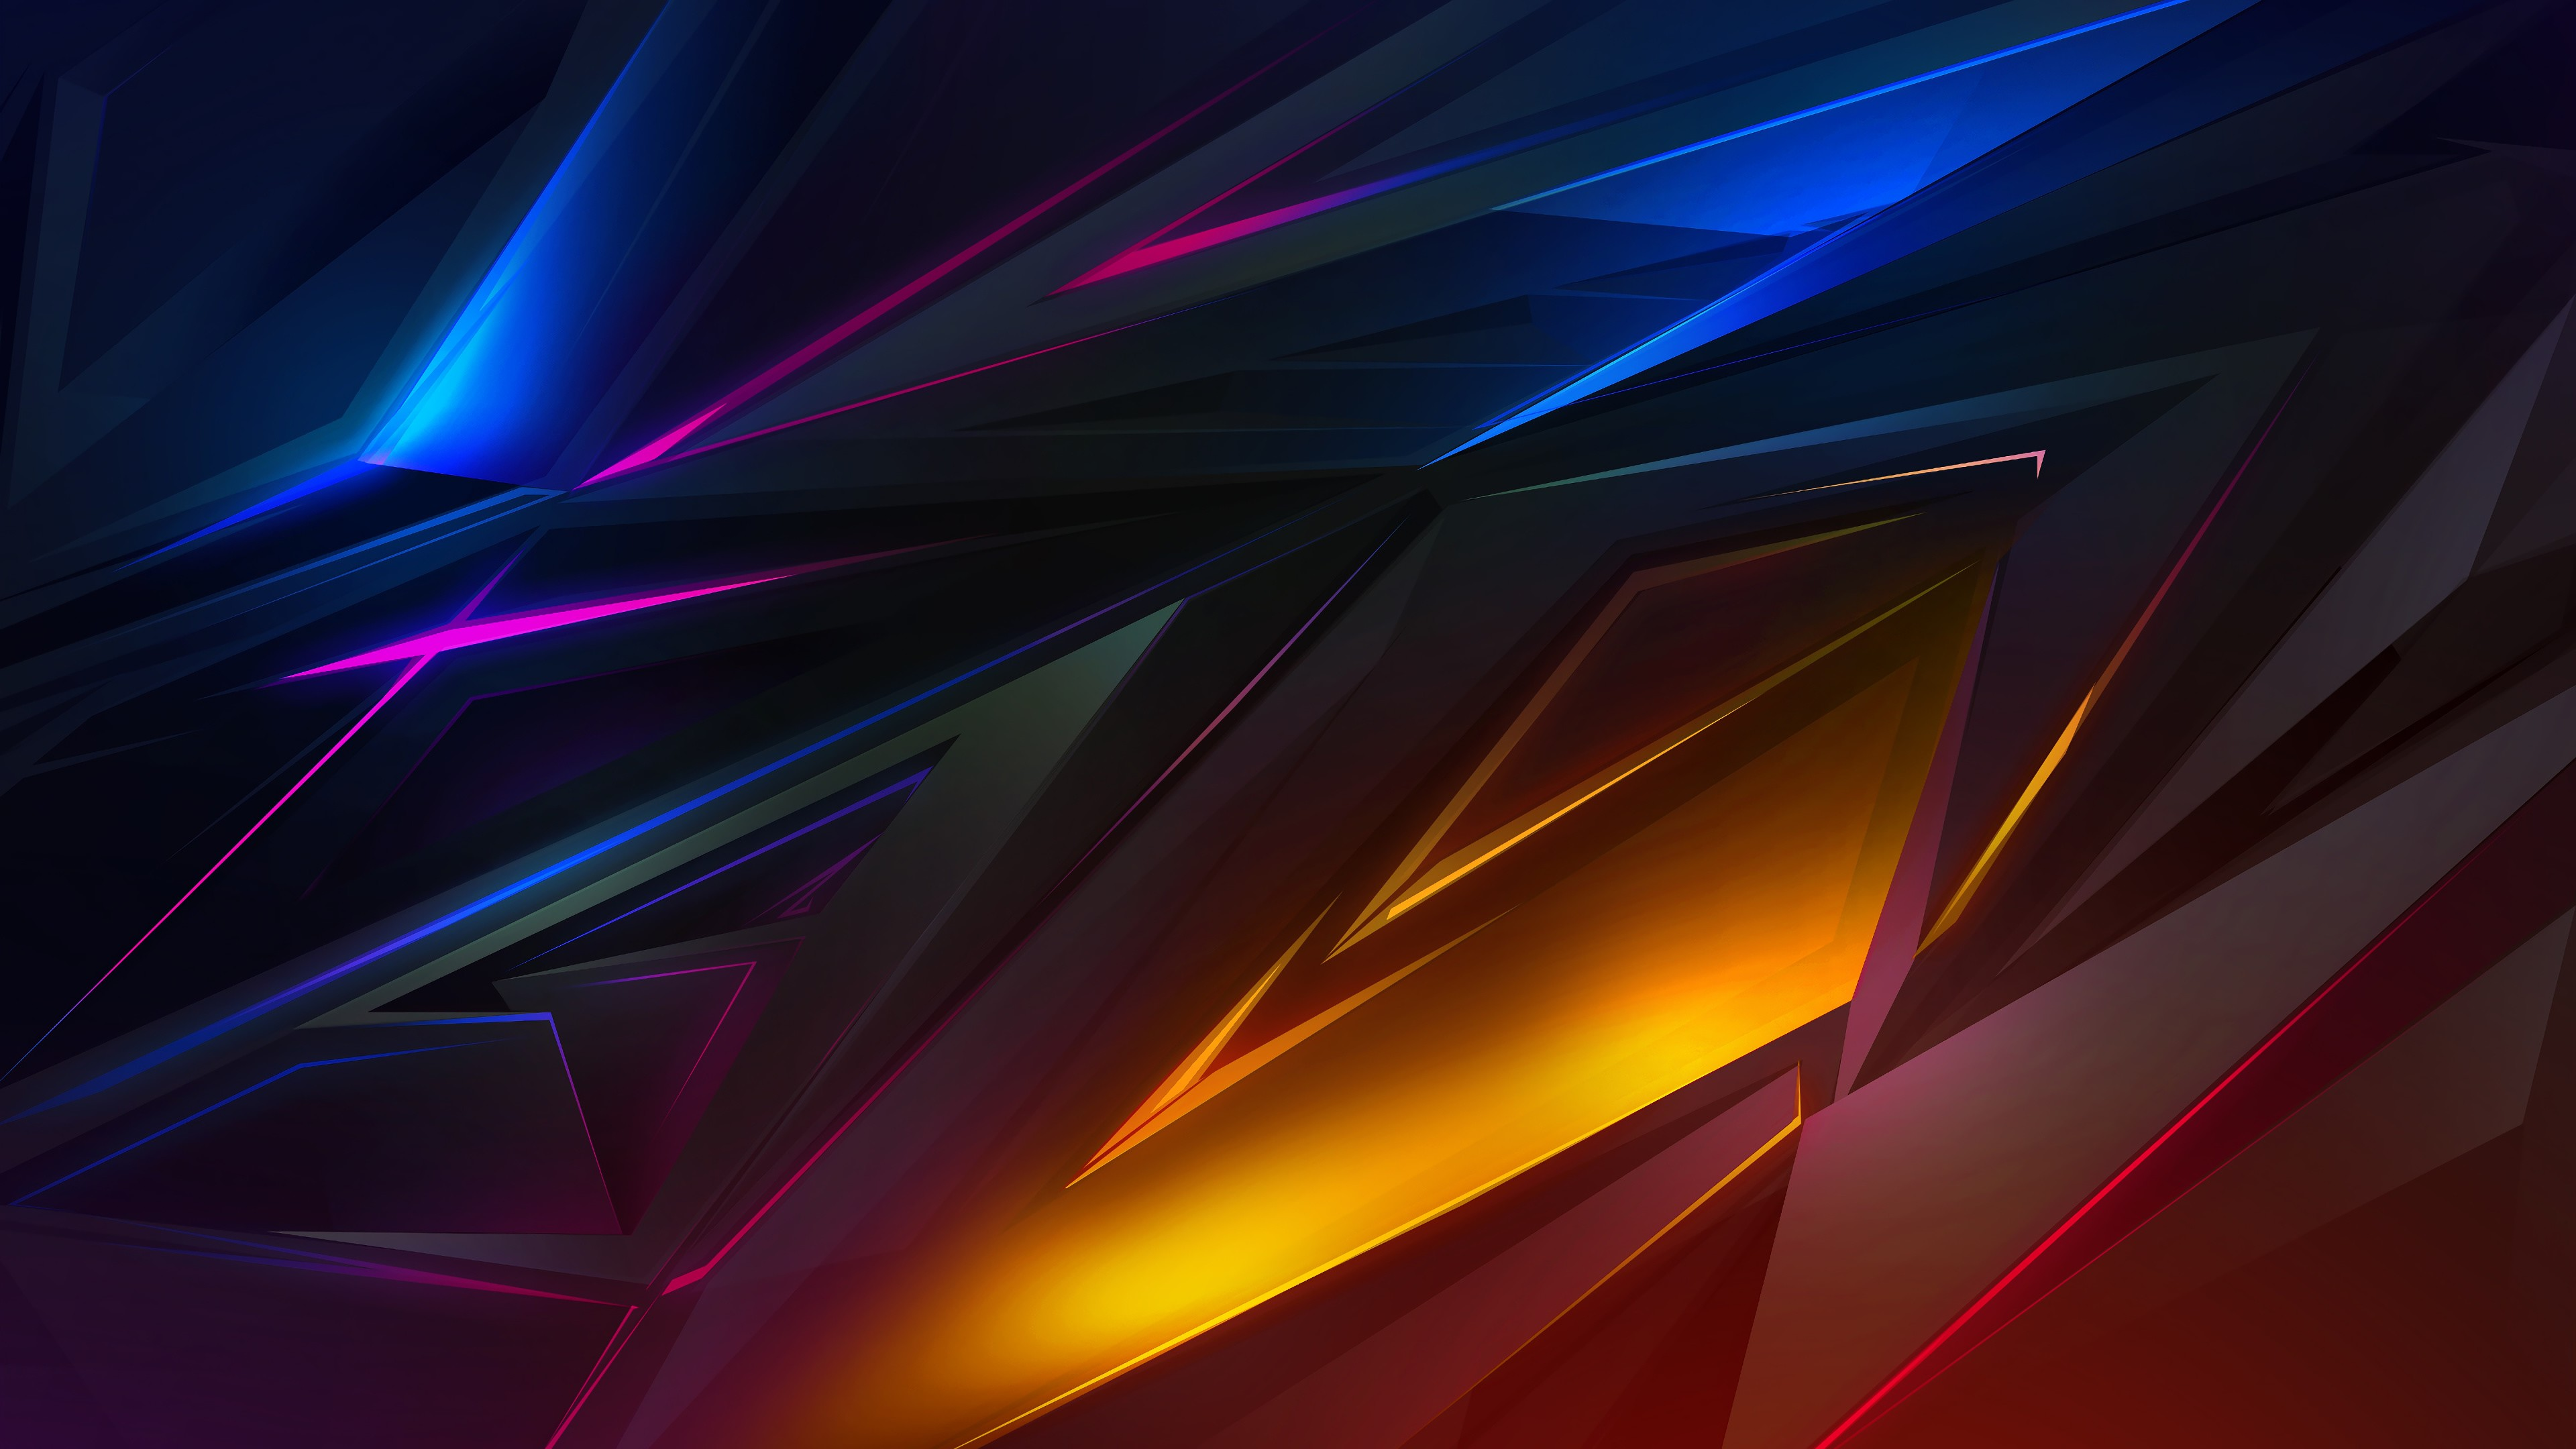 Abstract Polygons Wallpaper 4k Ultra Hd Id 3089